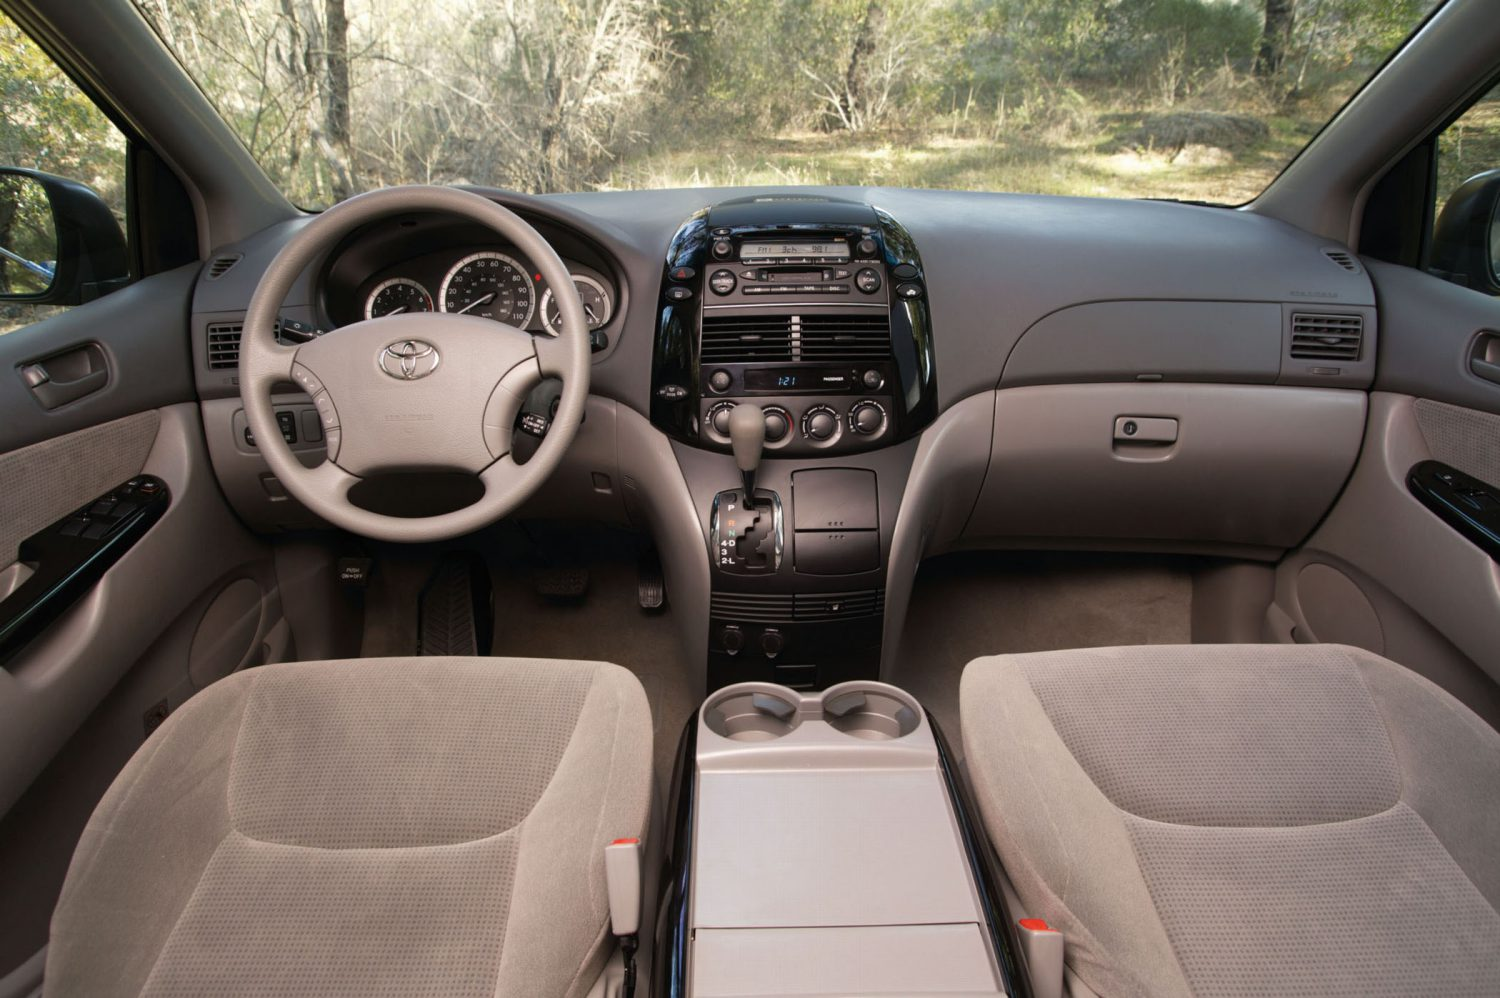 2004 2005 sienna le interior 001 toyota usa newsroom 2004 2005 sienna le interior 001